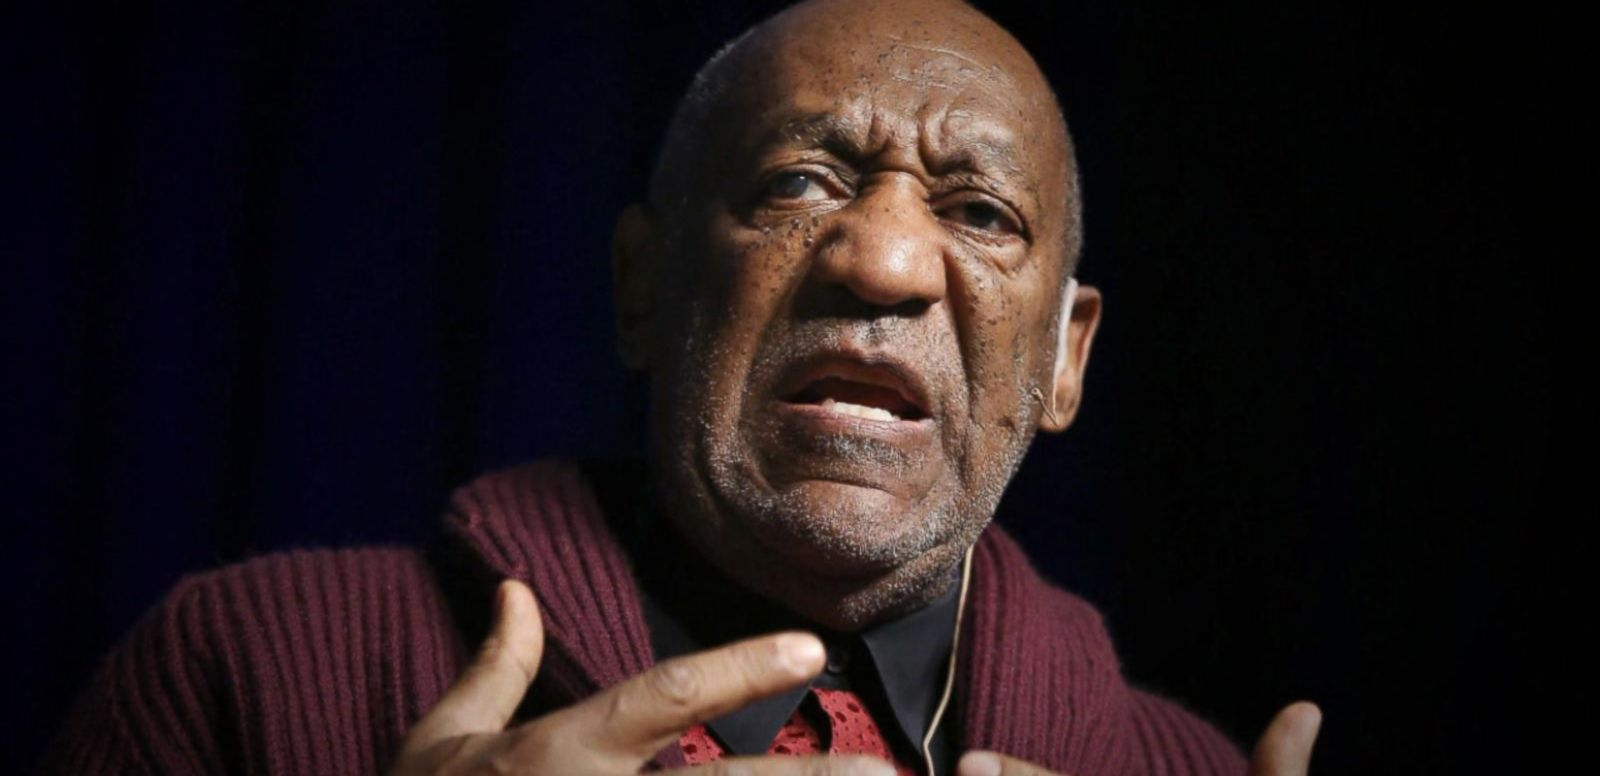 VIDEO: Index: One of Cosby's Accusers Drops Her Defamation Suit